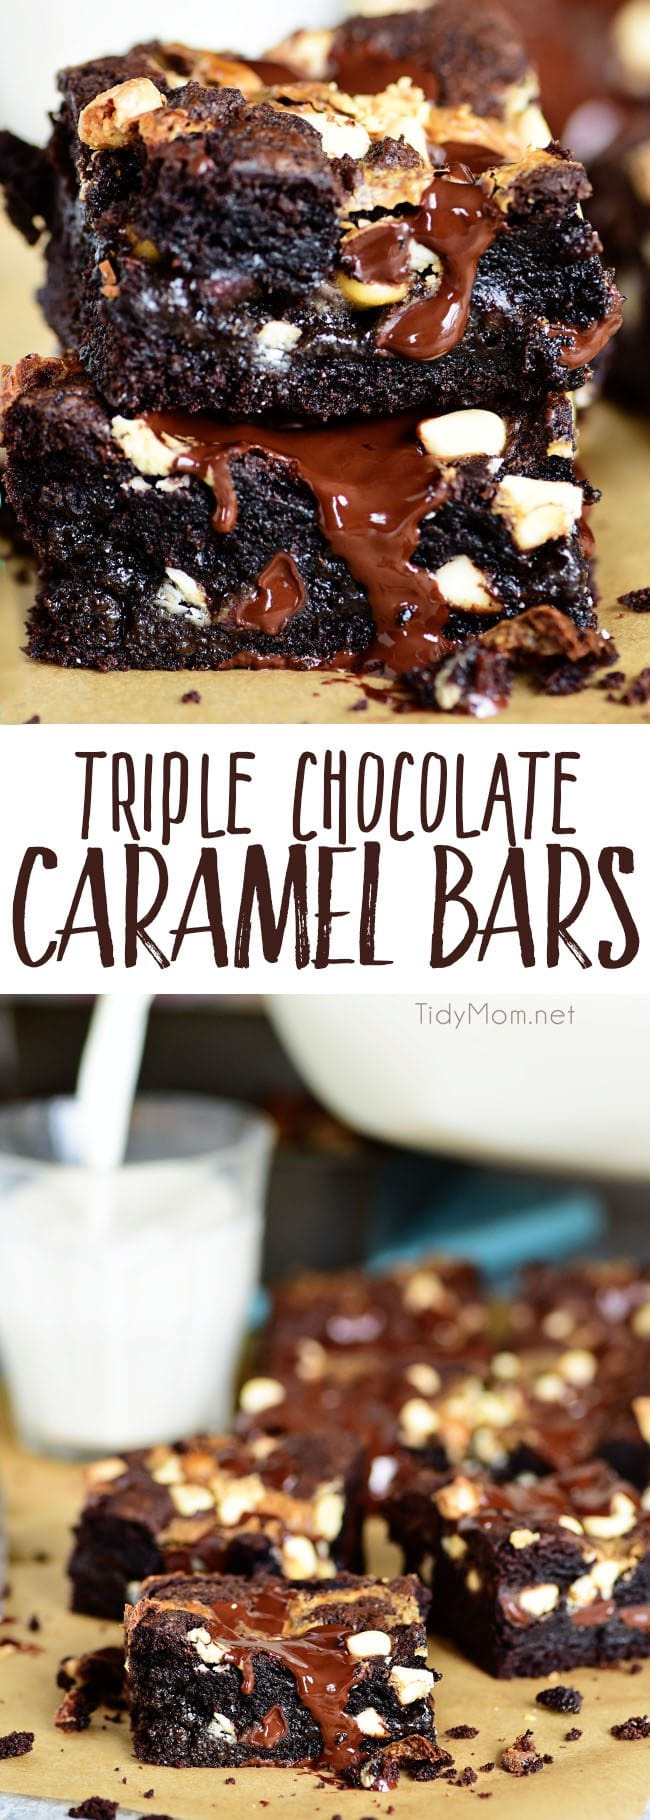 Triple Chocolate Caramel Bars are like a thick chewy brownie only better!! These indulgent cake mix bars are always a hit and easy to make! Print the full recipe at TidyMom.net